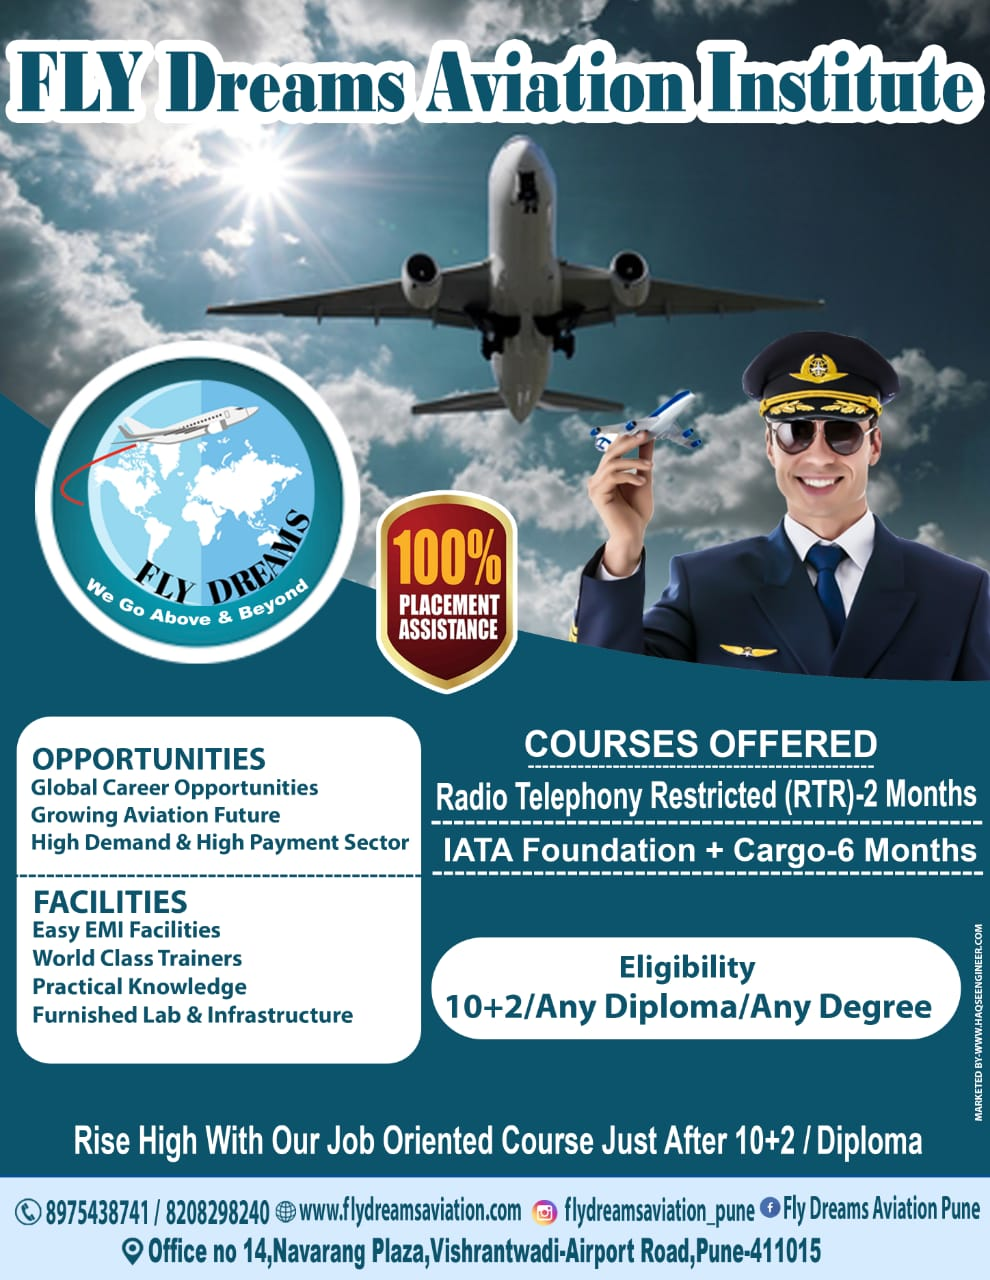 fly-dreams-aviation-institute-pune-rtr-classes-in-pune-haq-se-engineer-aviation-classes-in-pune